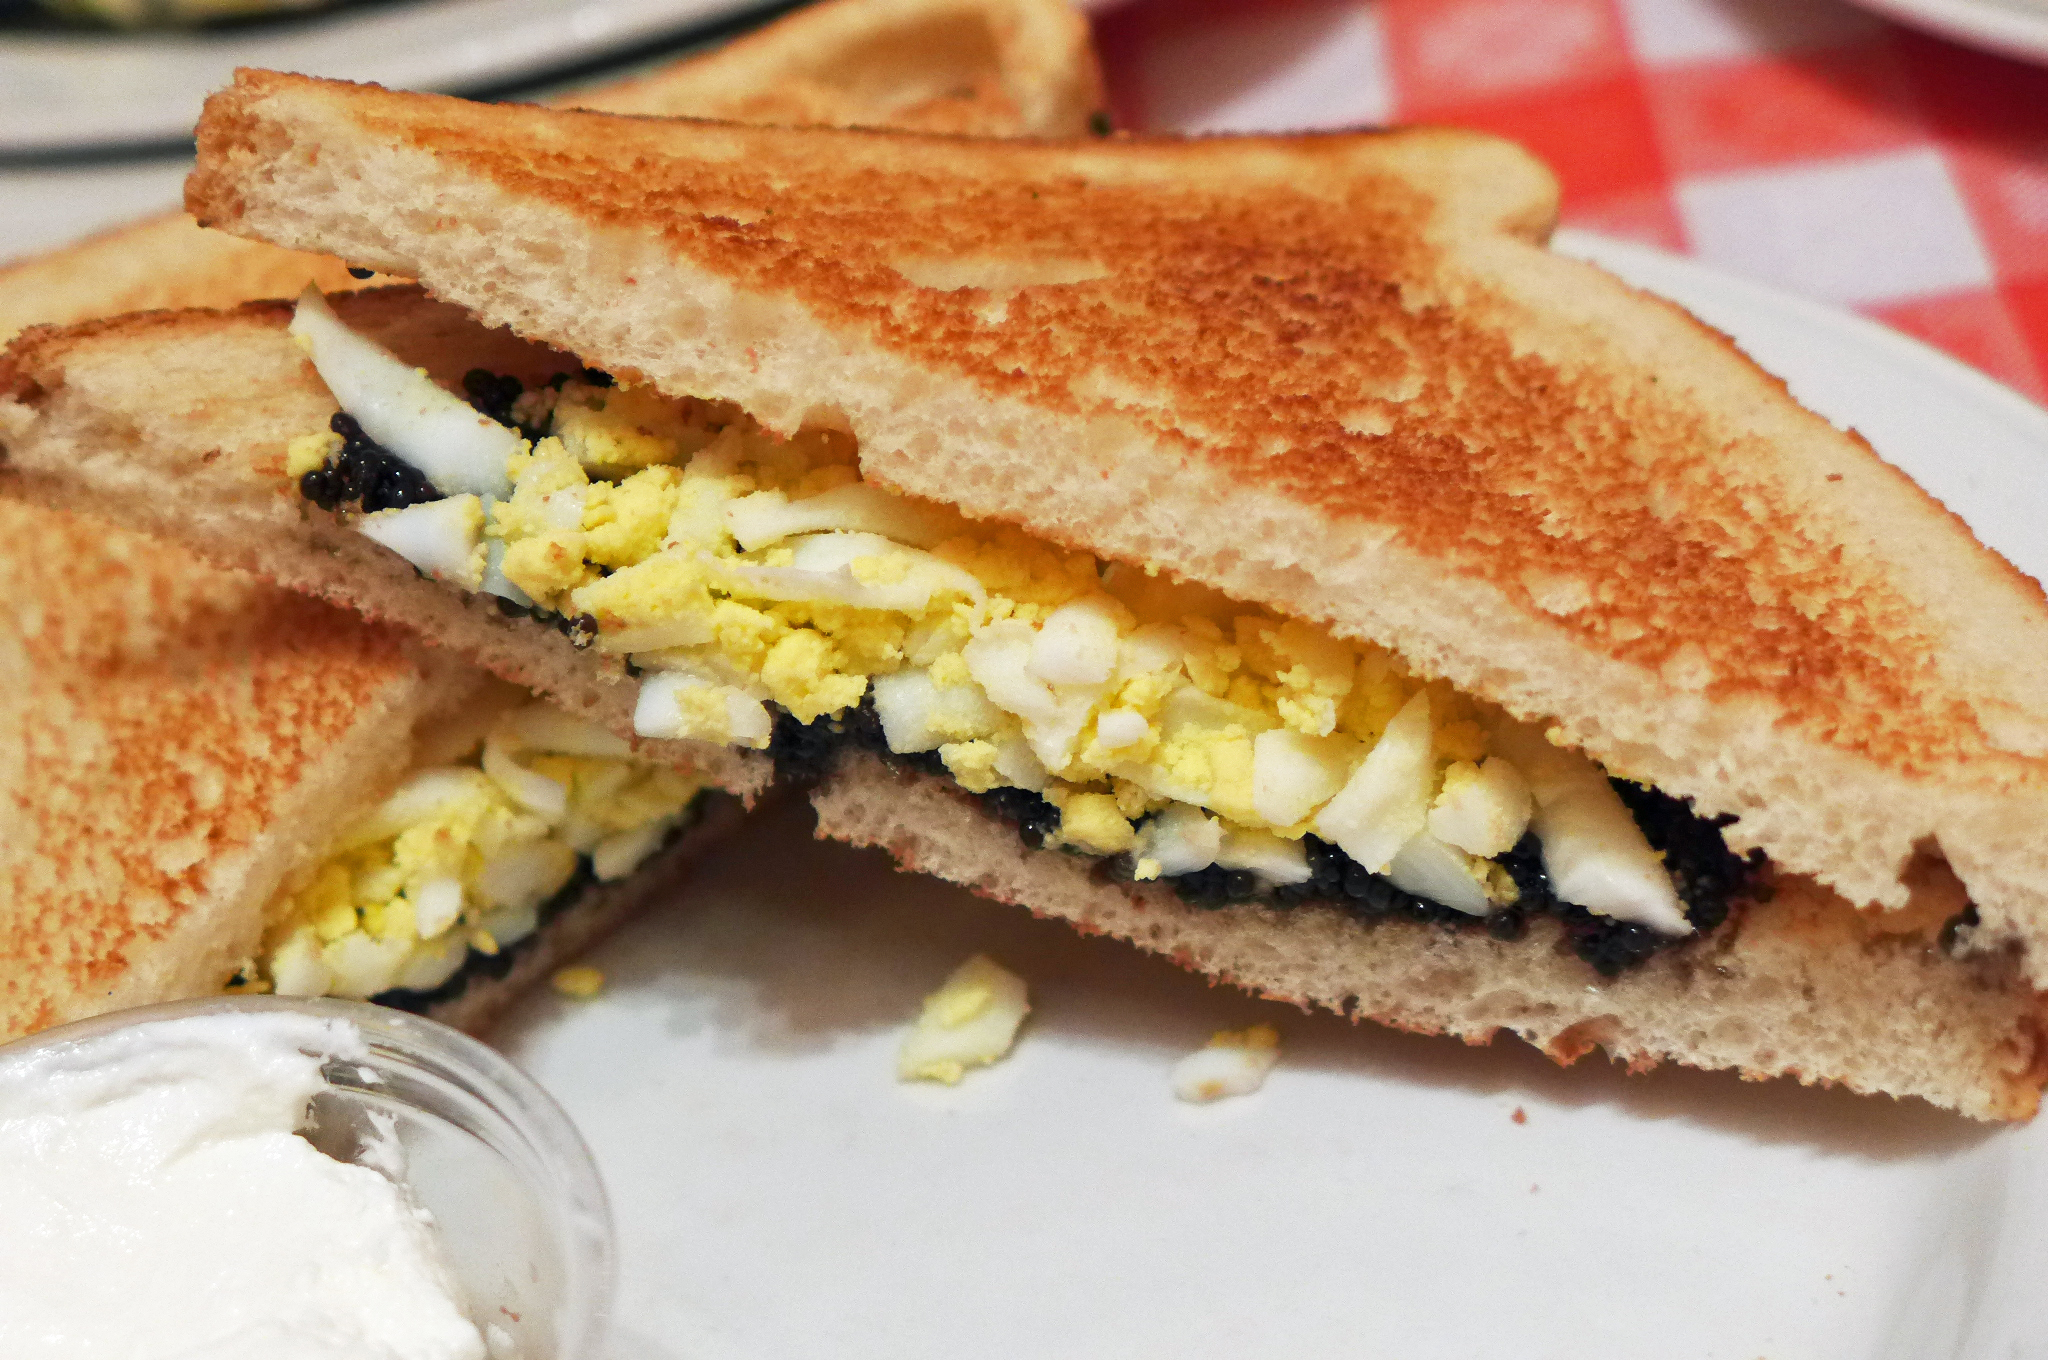 A sandwich cut in half on toasted white bread filled with shredded boiled eggs and black caviar...